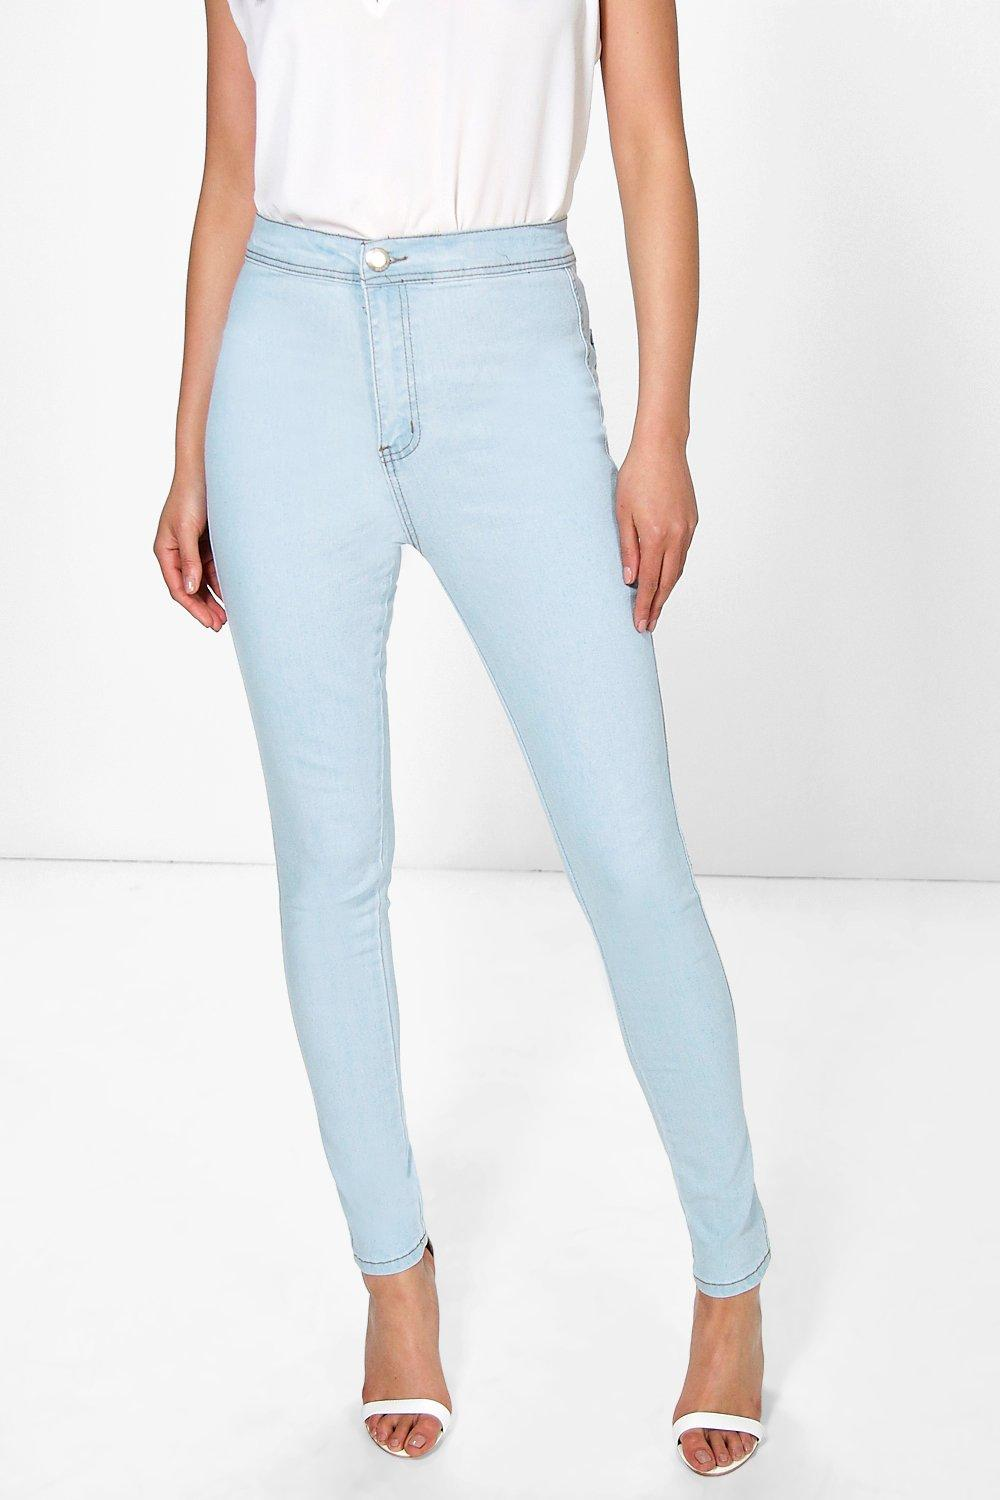 Lara High Rise Bleach Wash Skinny Jeans